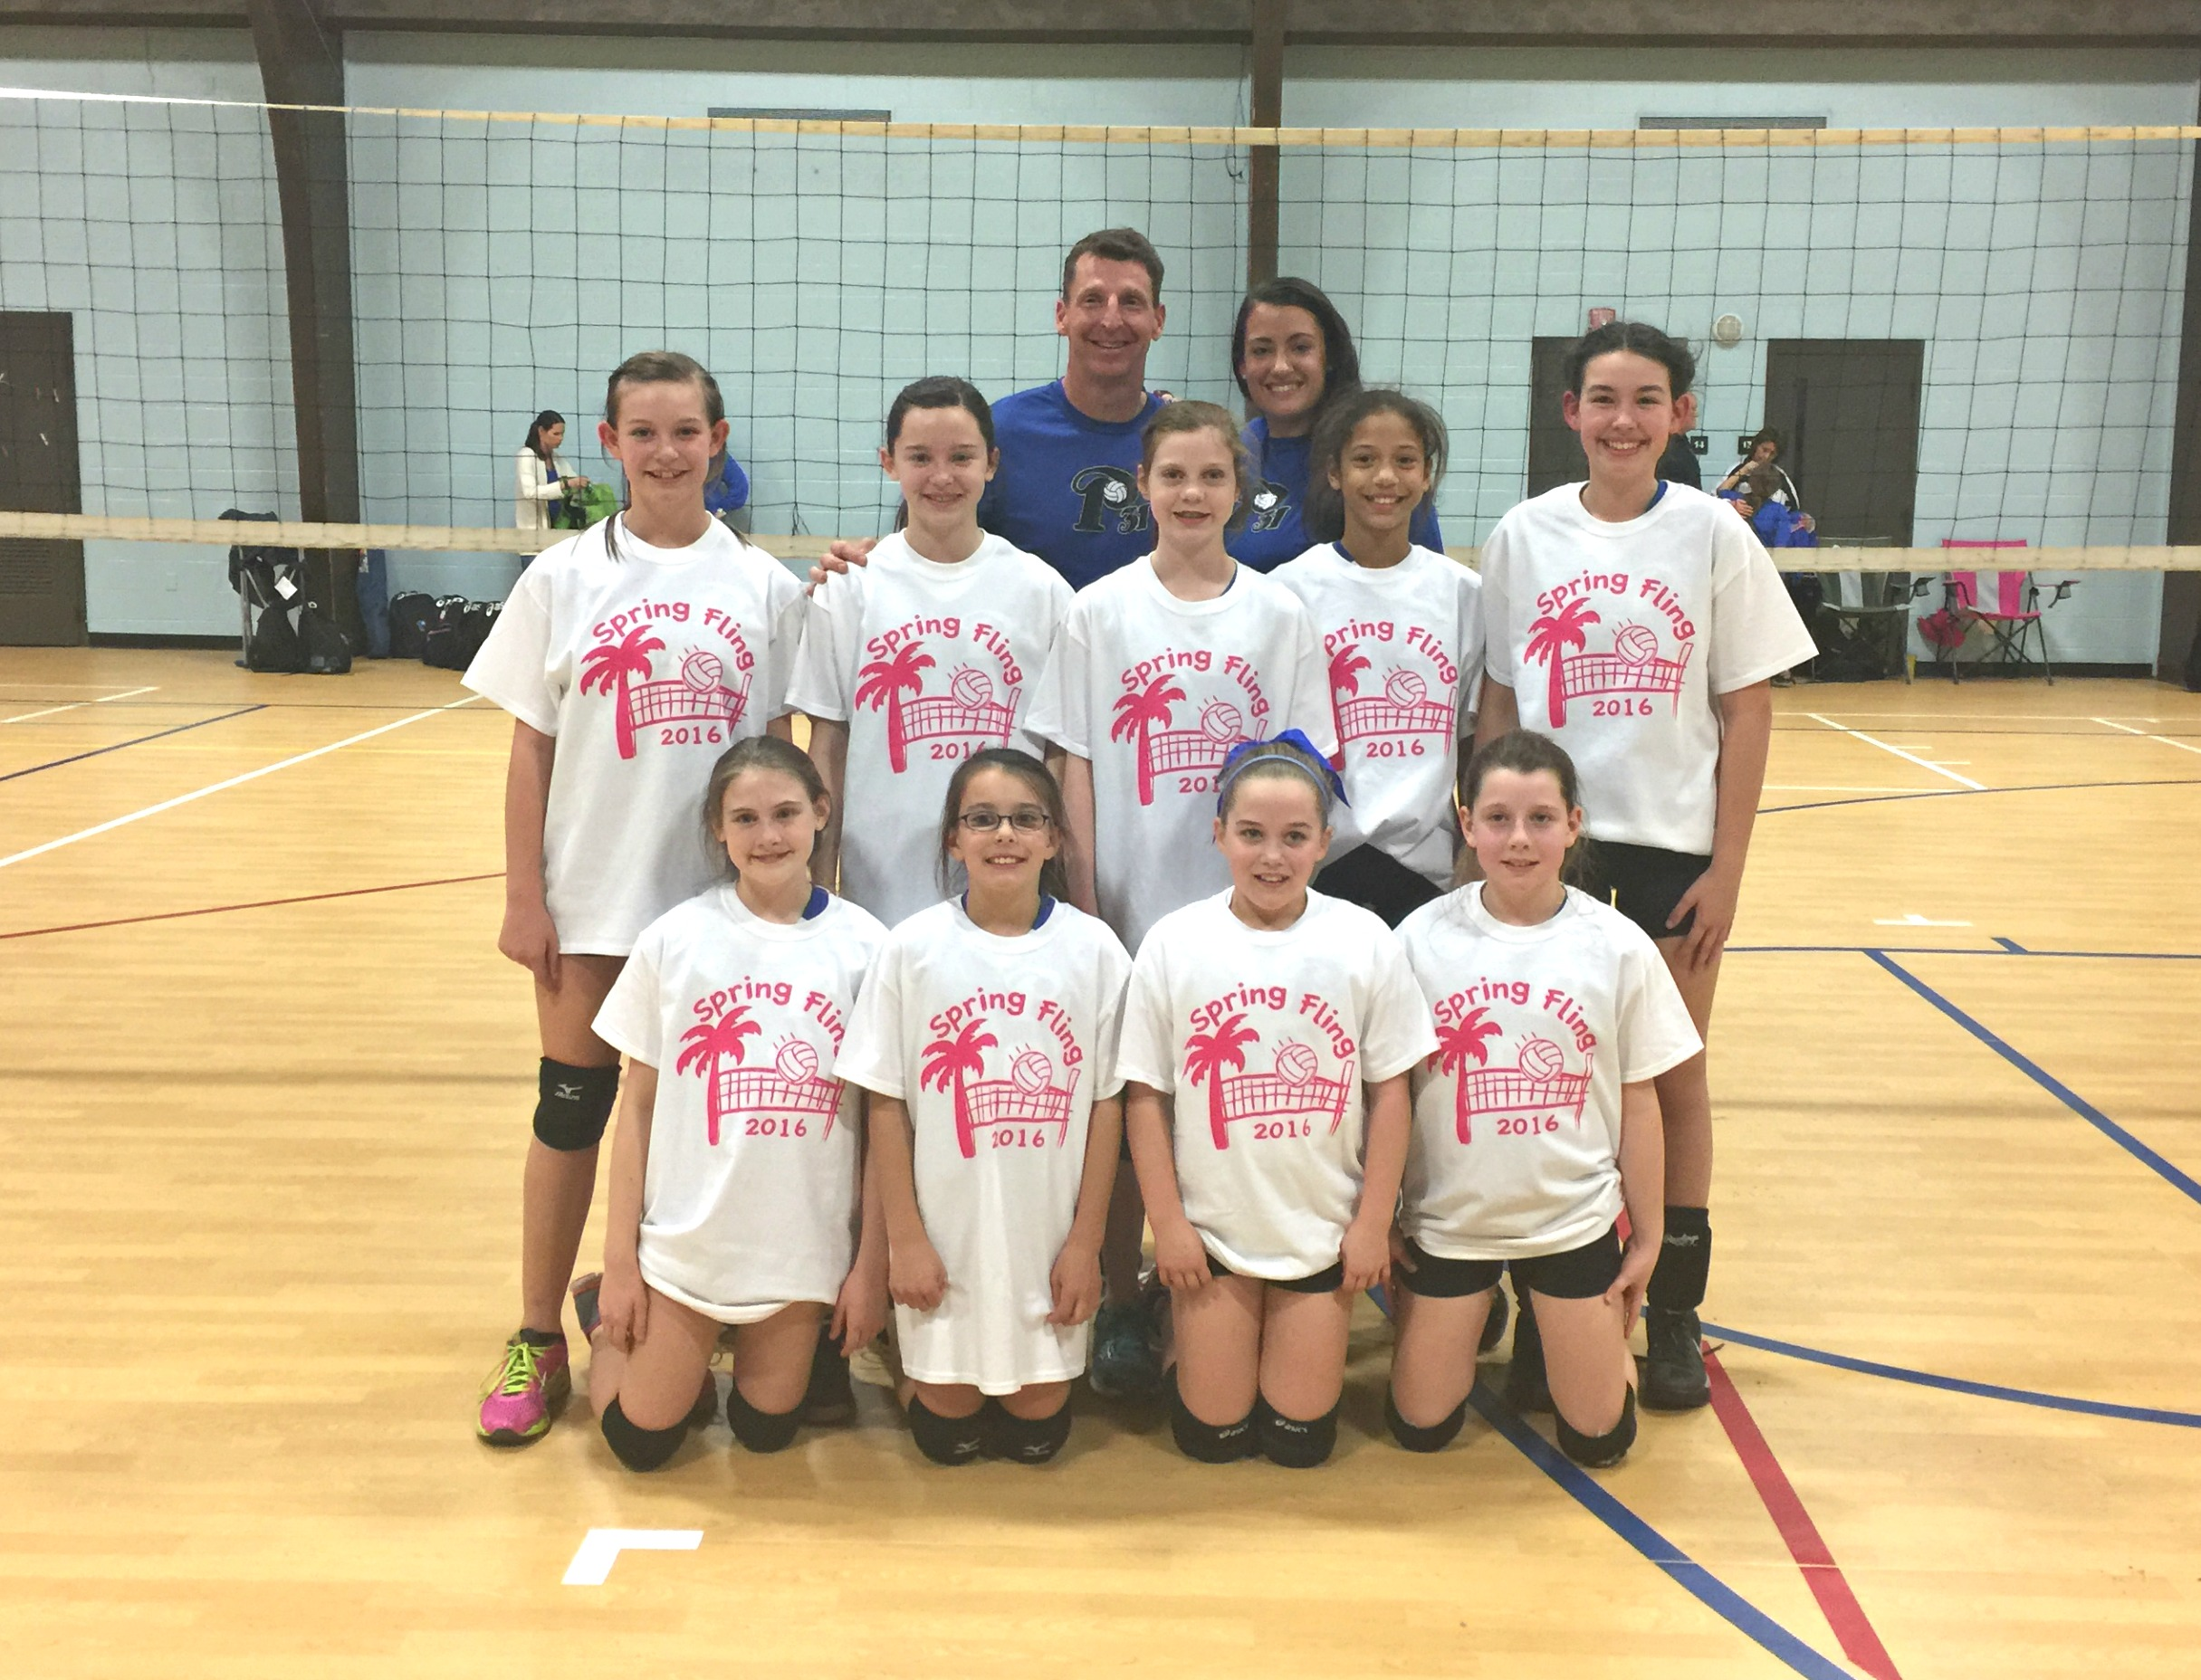 12Uspringchamps 2